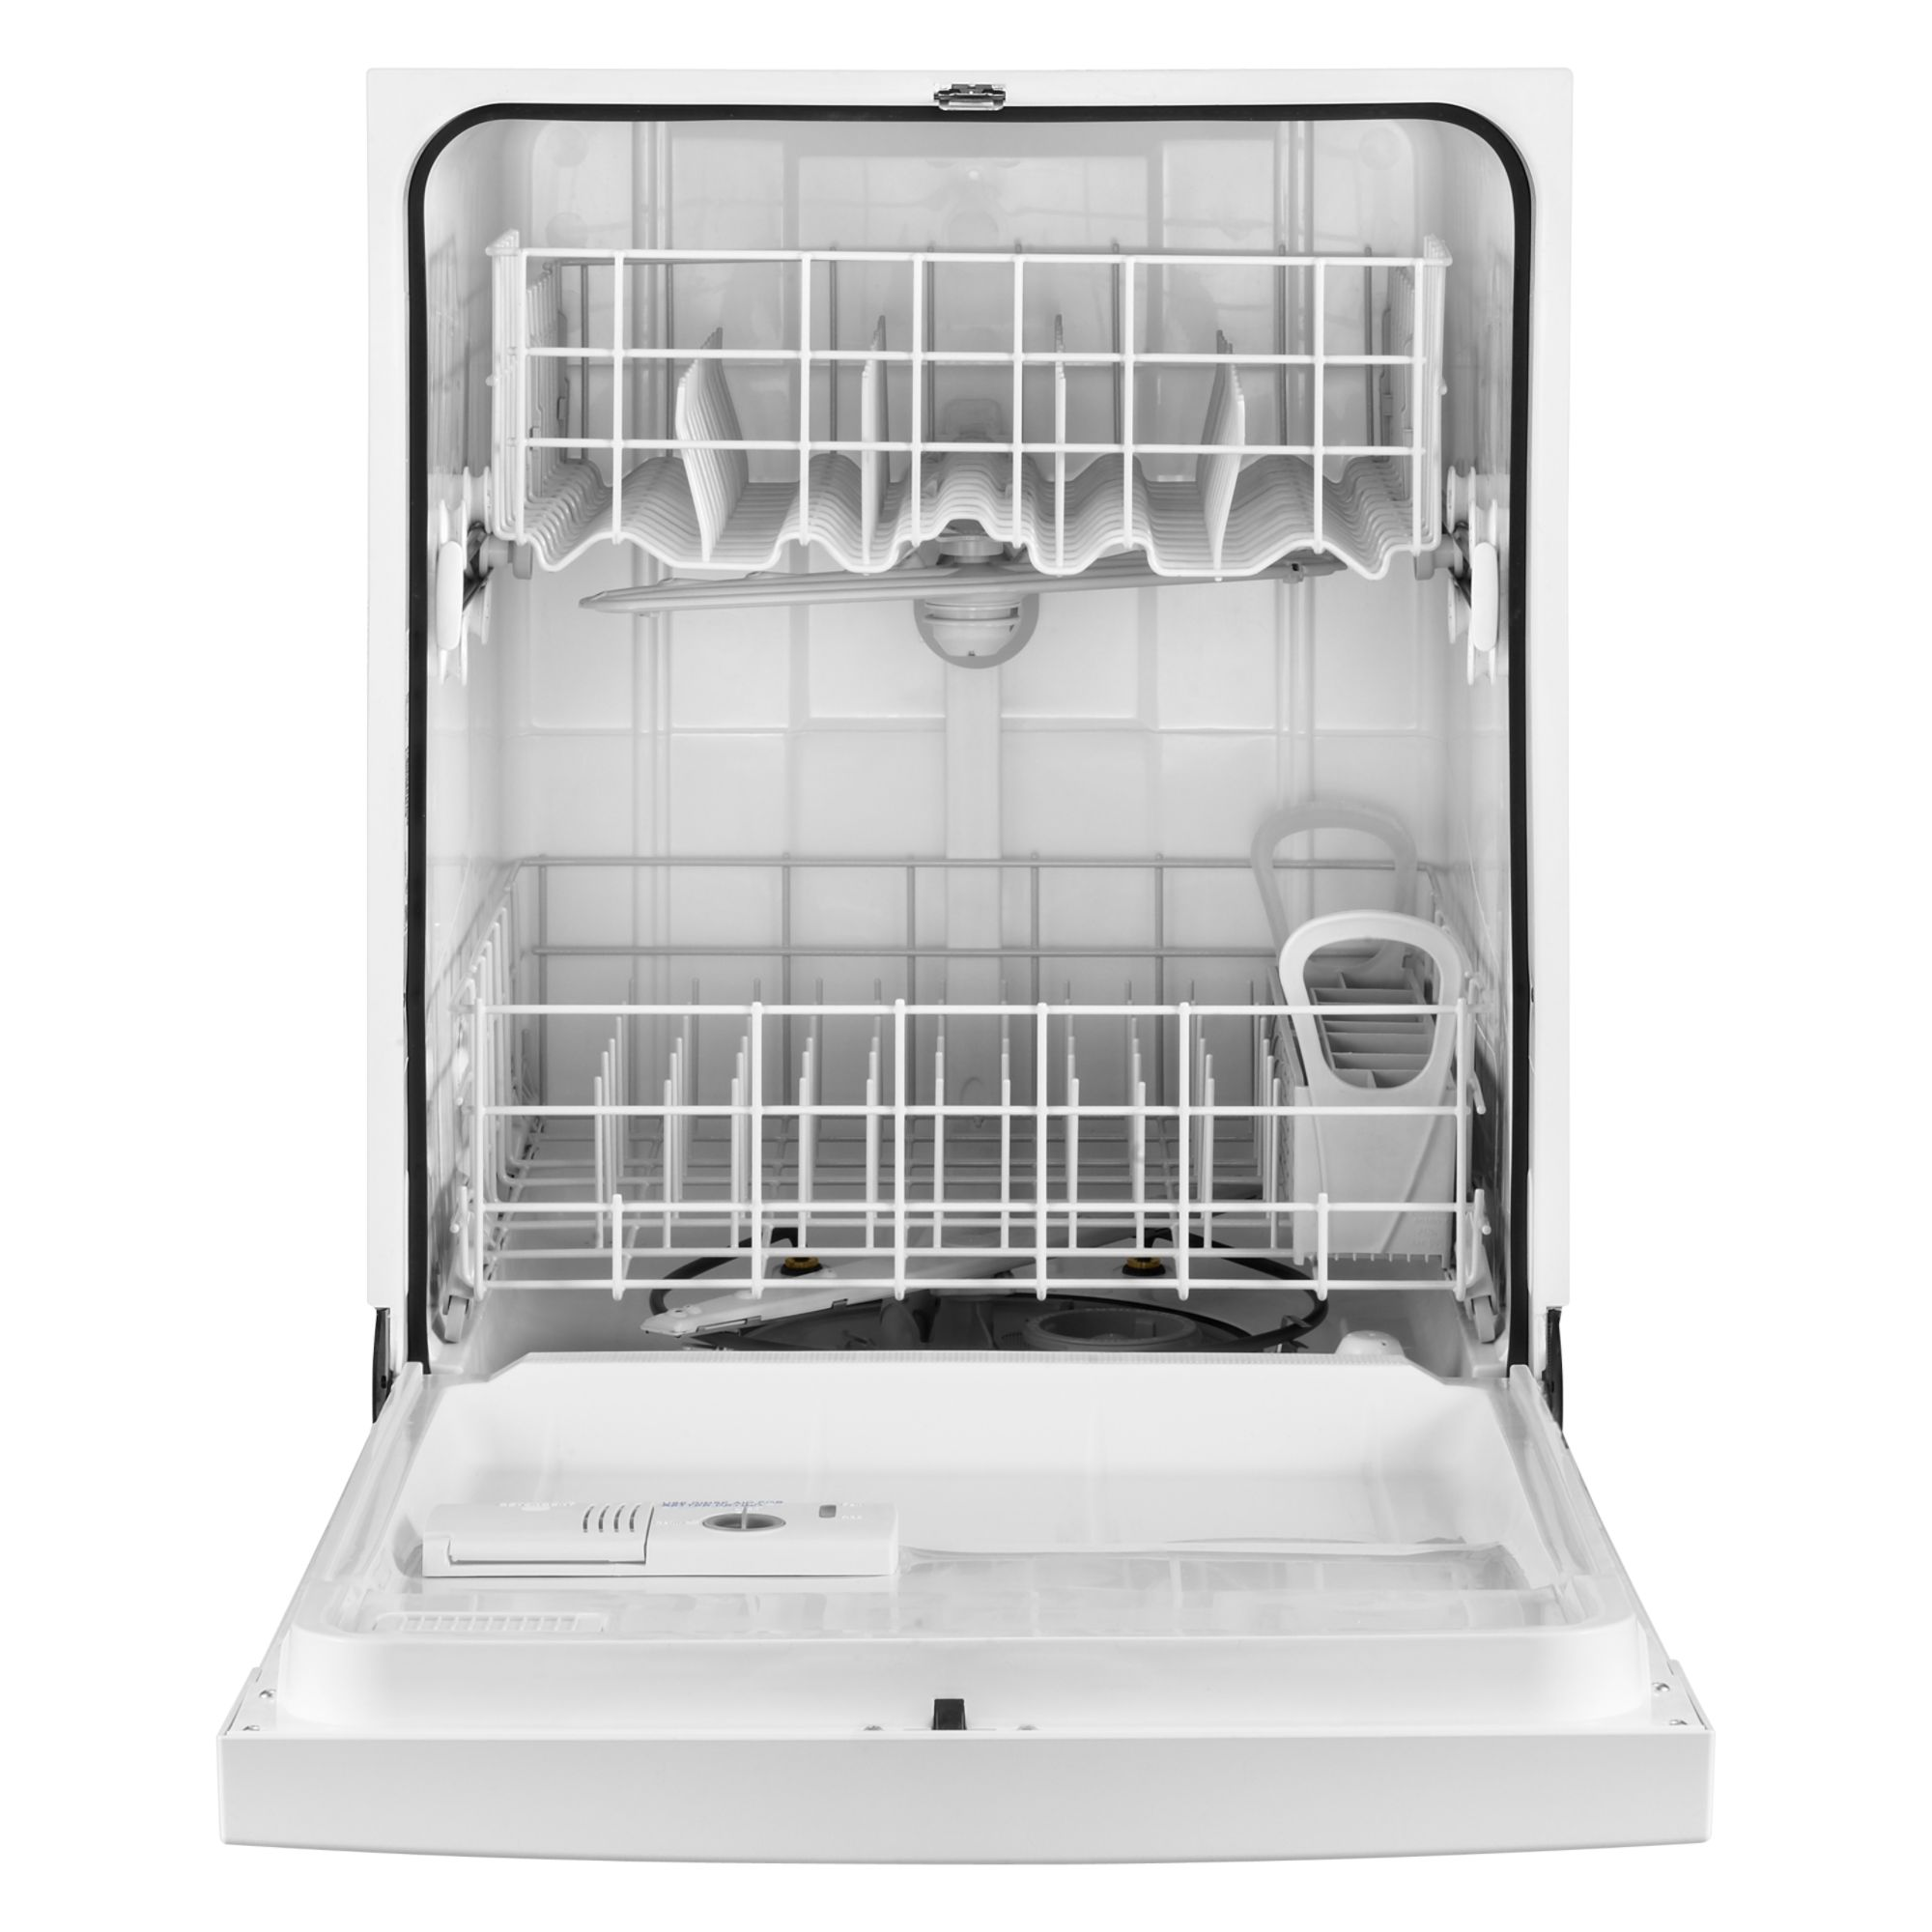 "Whirlpool 24"" Built-In Dishwasher w/ Resource-Efficient Wash System - Stainless Look"